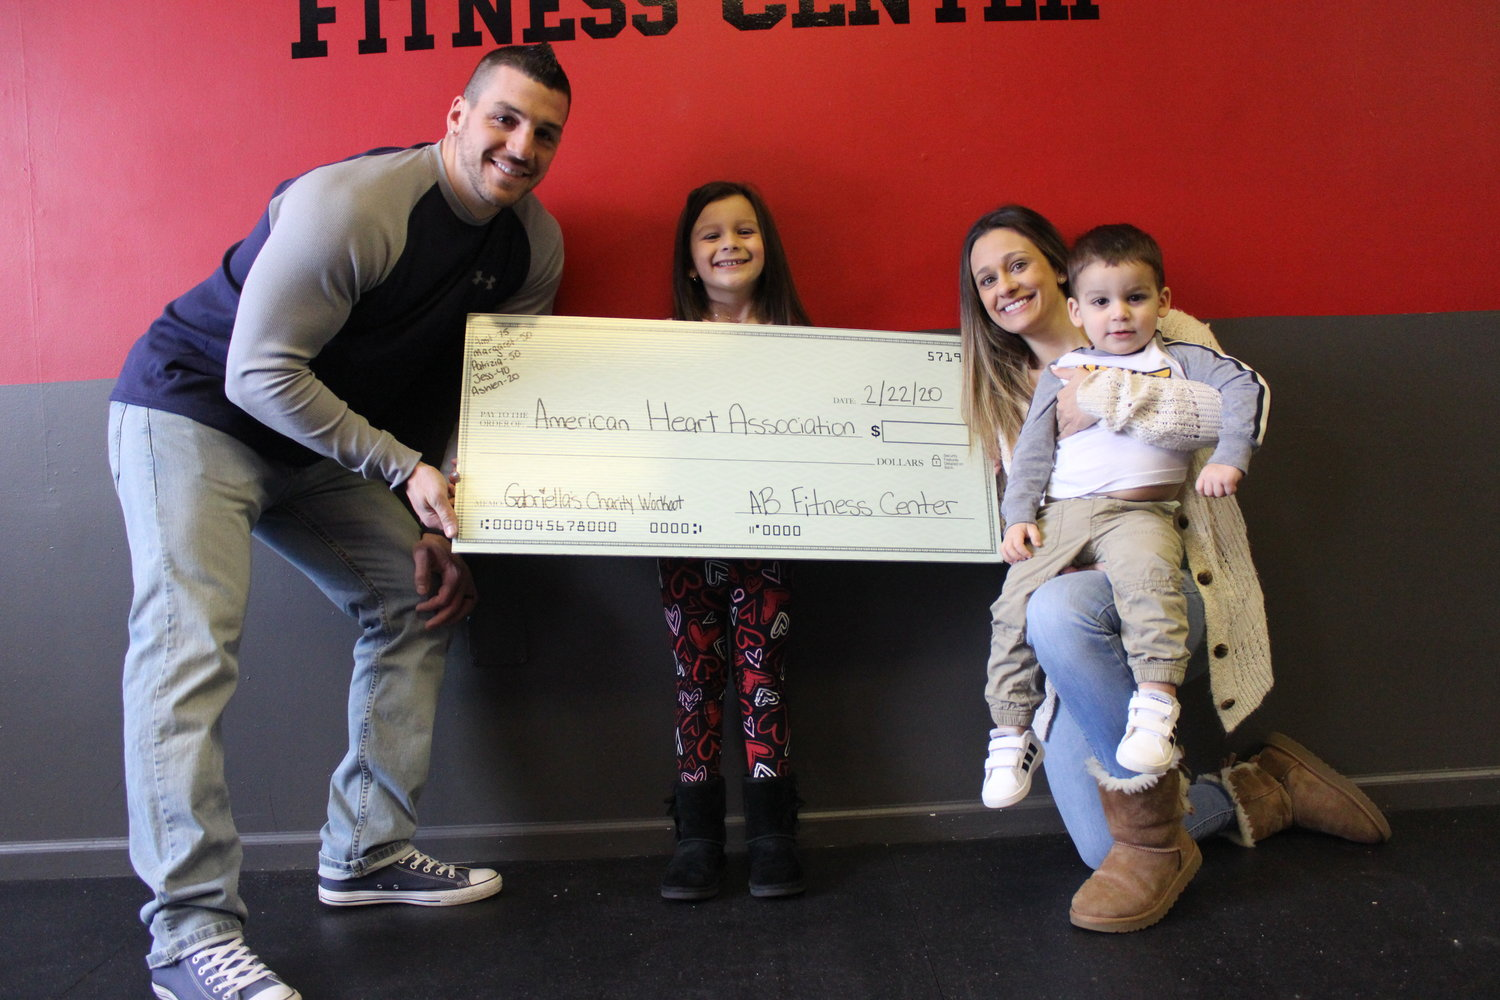 Coincidentally, Gabriella's first-grade class at McVey Elementary School is also raising funds for the AHA. This year, AB Fitness Center is dedicating its charity workout to Gabriella's fundraising mission.